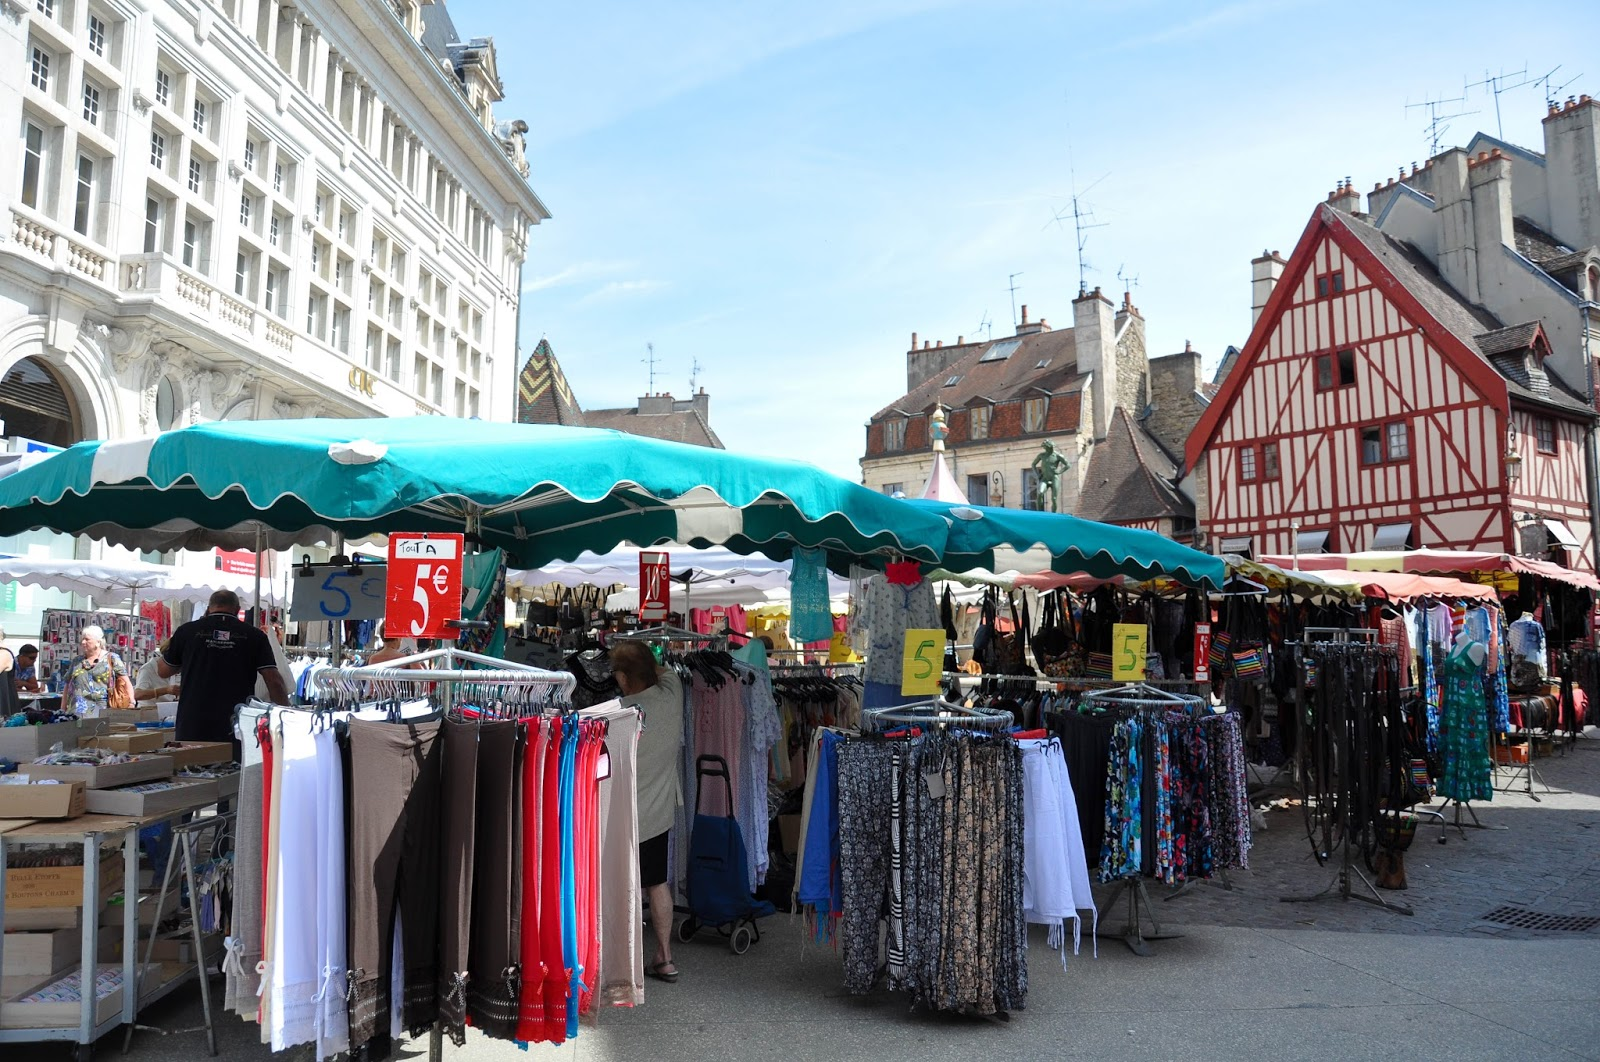 Market in front of medieval buildings, Dijon, Burgundy, France